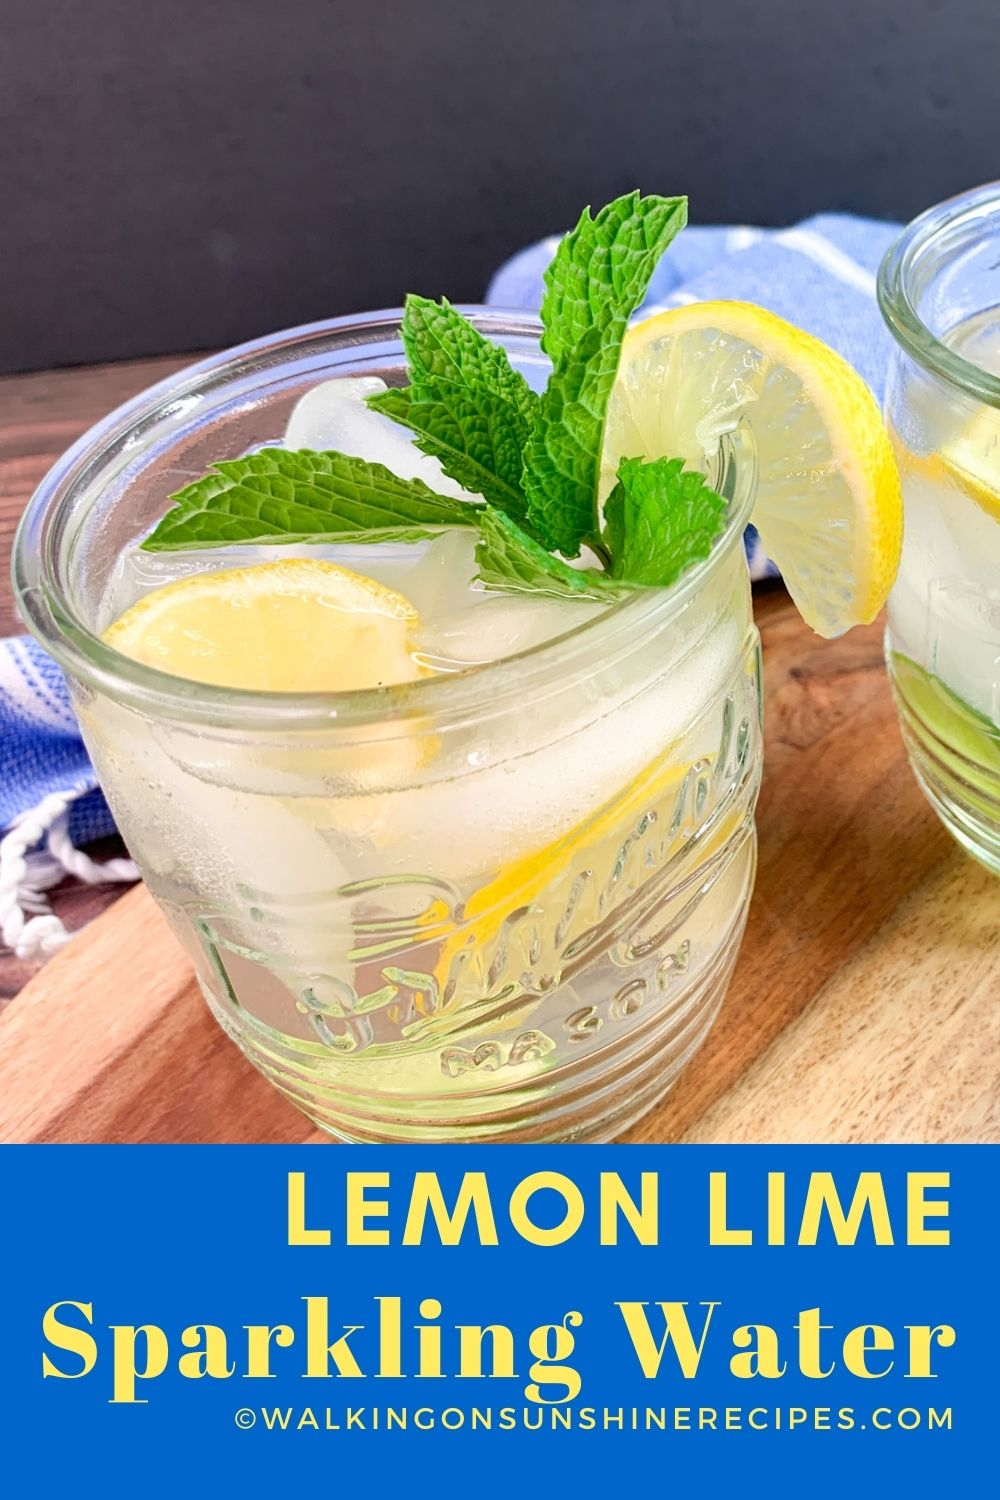 glass of lemon lime water with ice cubes and sprig of mint leaves.